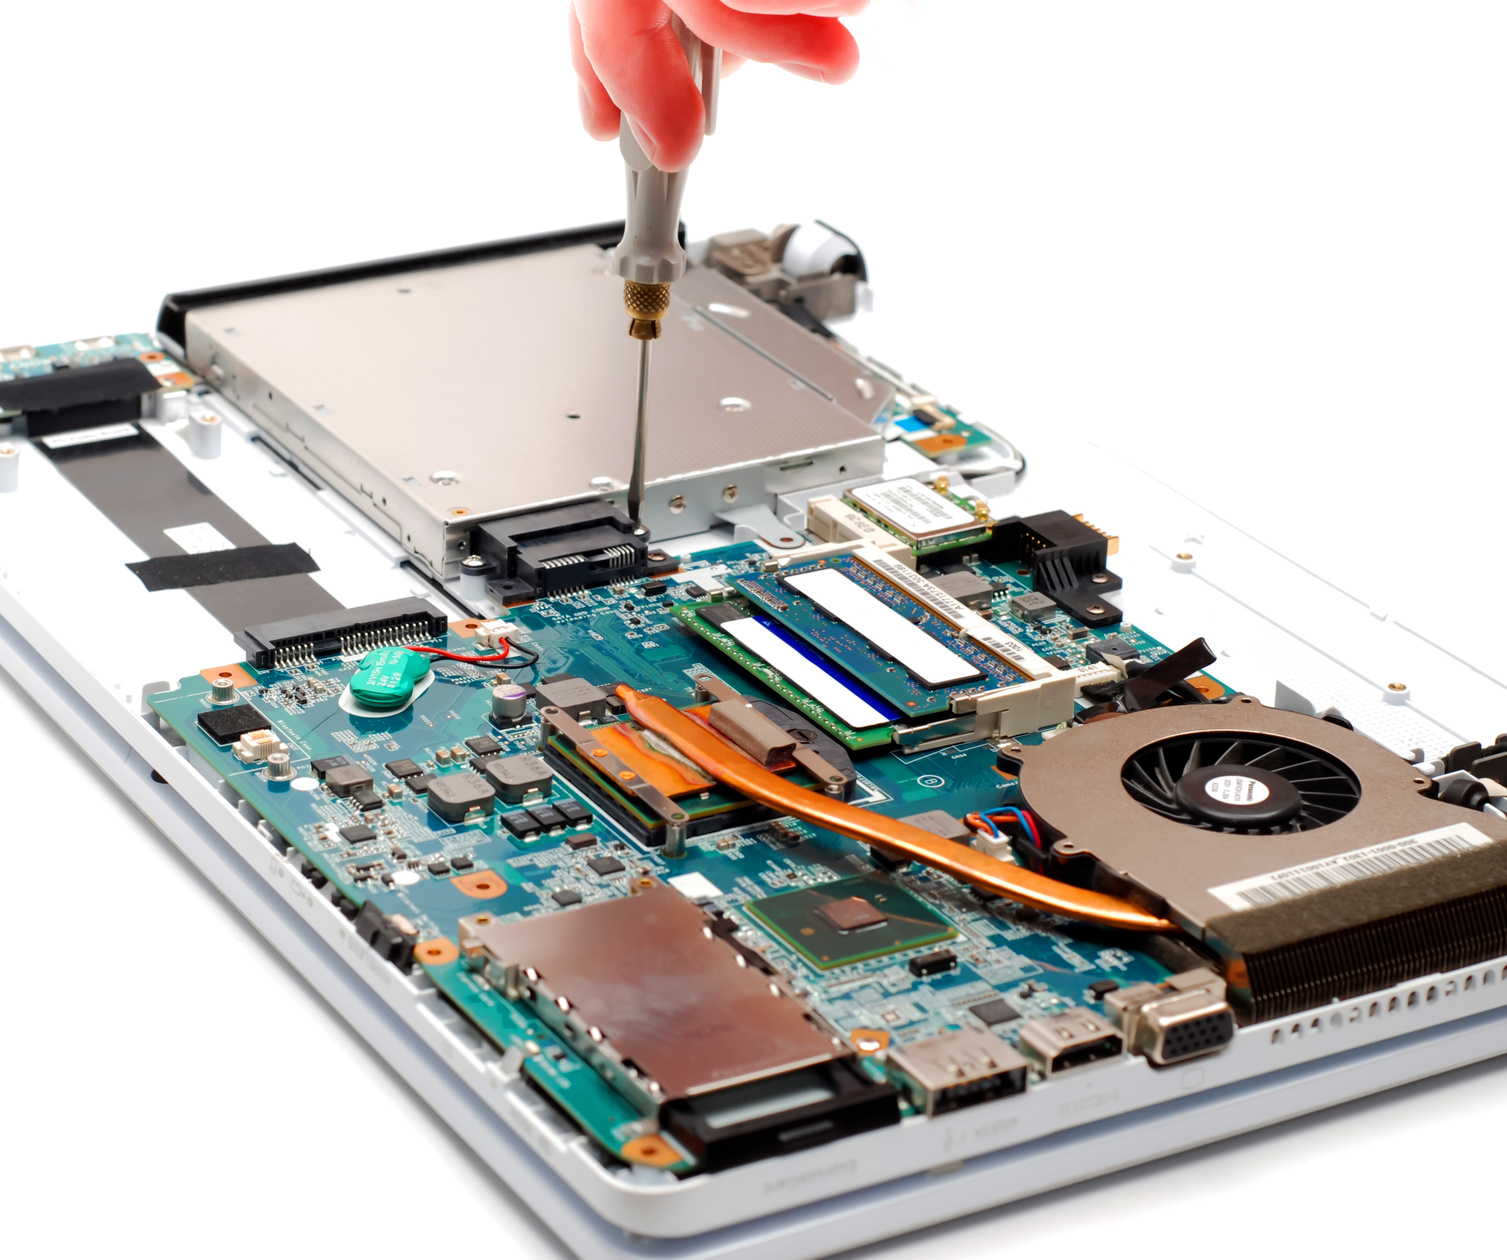 man repair laptop motherboard with screwdriver